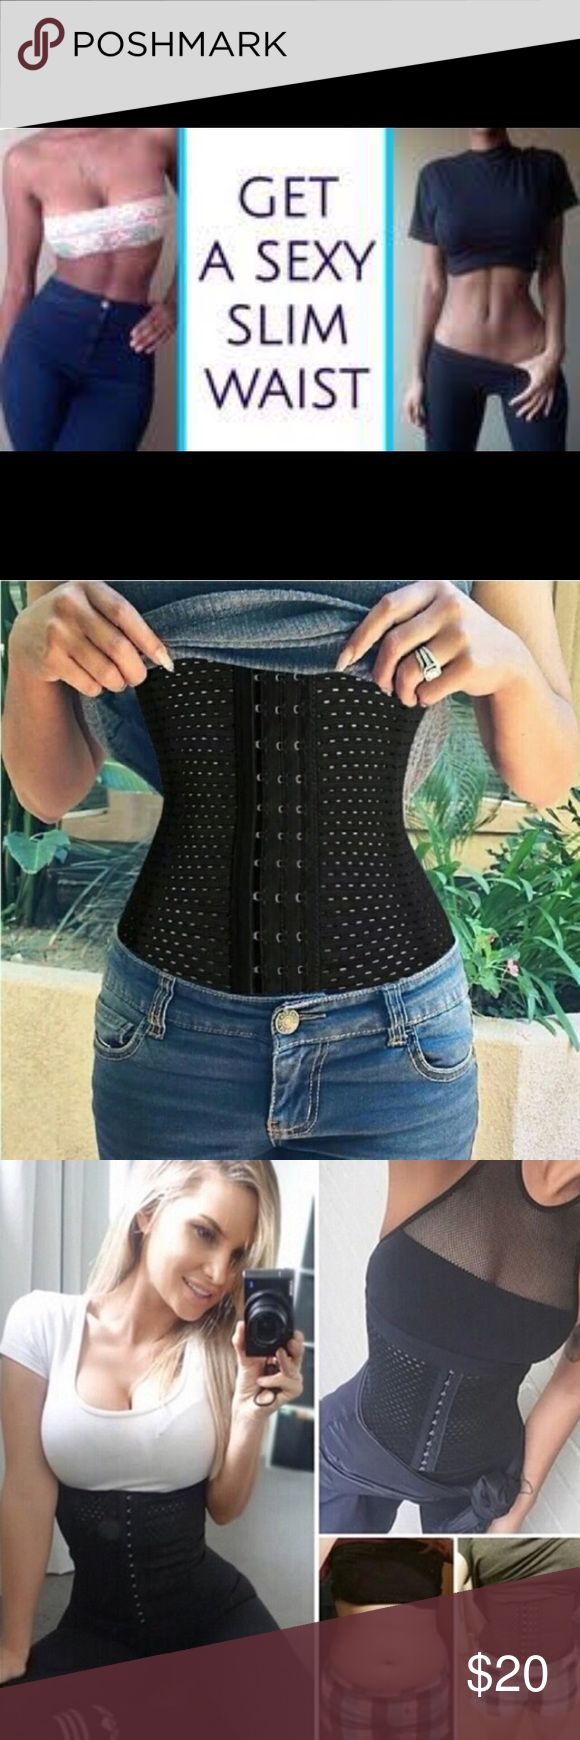 Waist Trainer ♡ Brand New ♡ Never used Waist Trainer ♡ Brand New ♡ Never used  *Pick The Size You wear In Shirts*  [Benefits]  • Helps Lose weight   • Helps Lose inches   • Drops pants sizes  • Contours midsection  • Comfortable  • Get rid of muffin top  • Reduce waistline  •3 rows of adjustable hooks to adjust to your size  • Stretchy and Flexible  • Can be worn on top or under clothing to give a instant weight loss look  • Start to see results without wearing it within a week adidas…